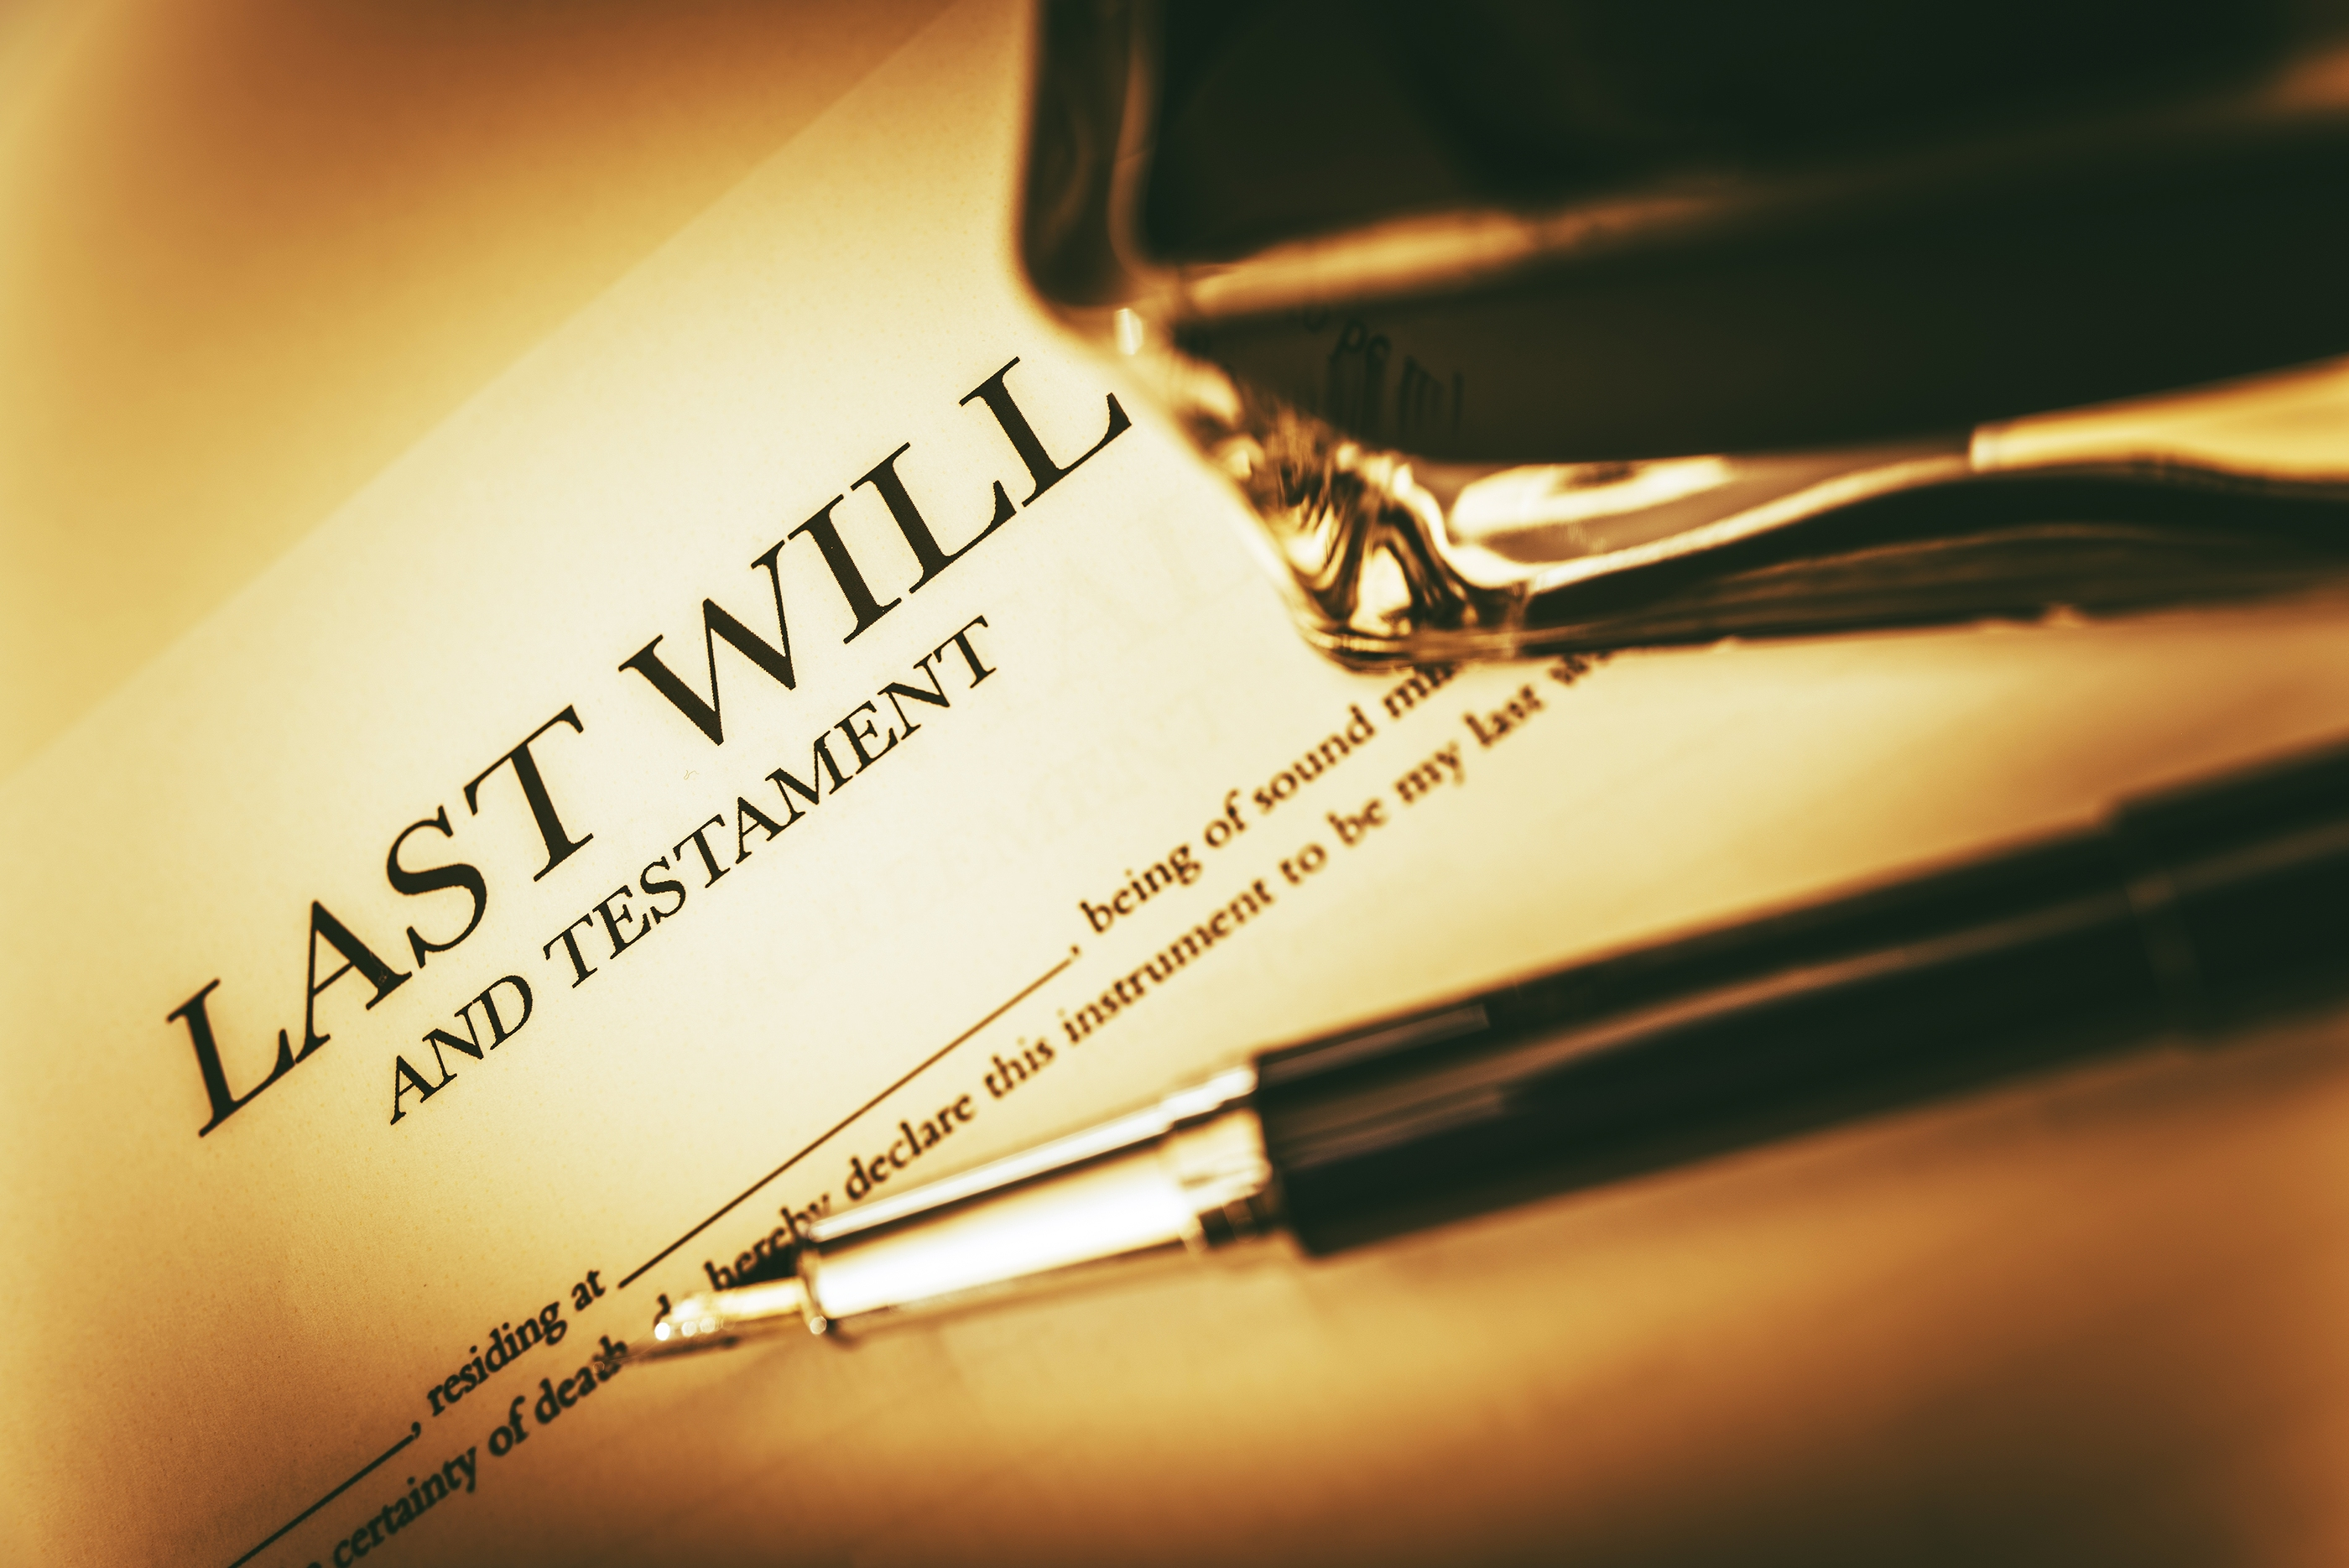 NY Estate Lawyer   Wills   Hoffmaier & Hoffmaier, P.C.